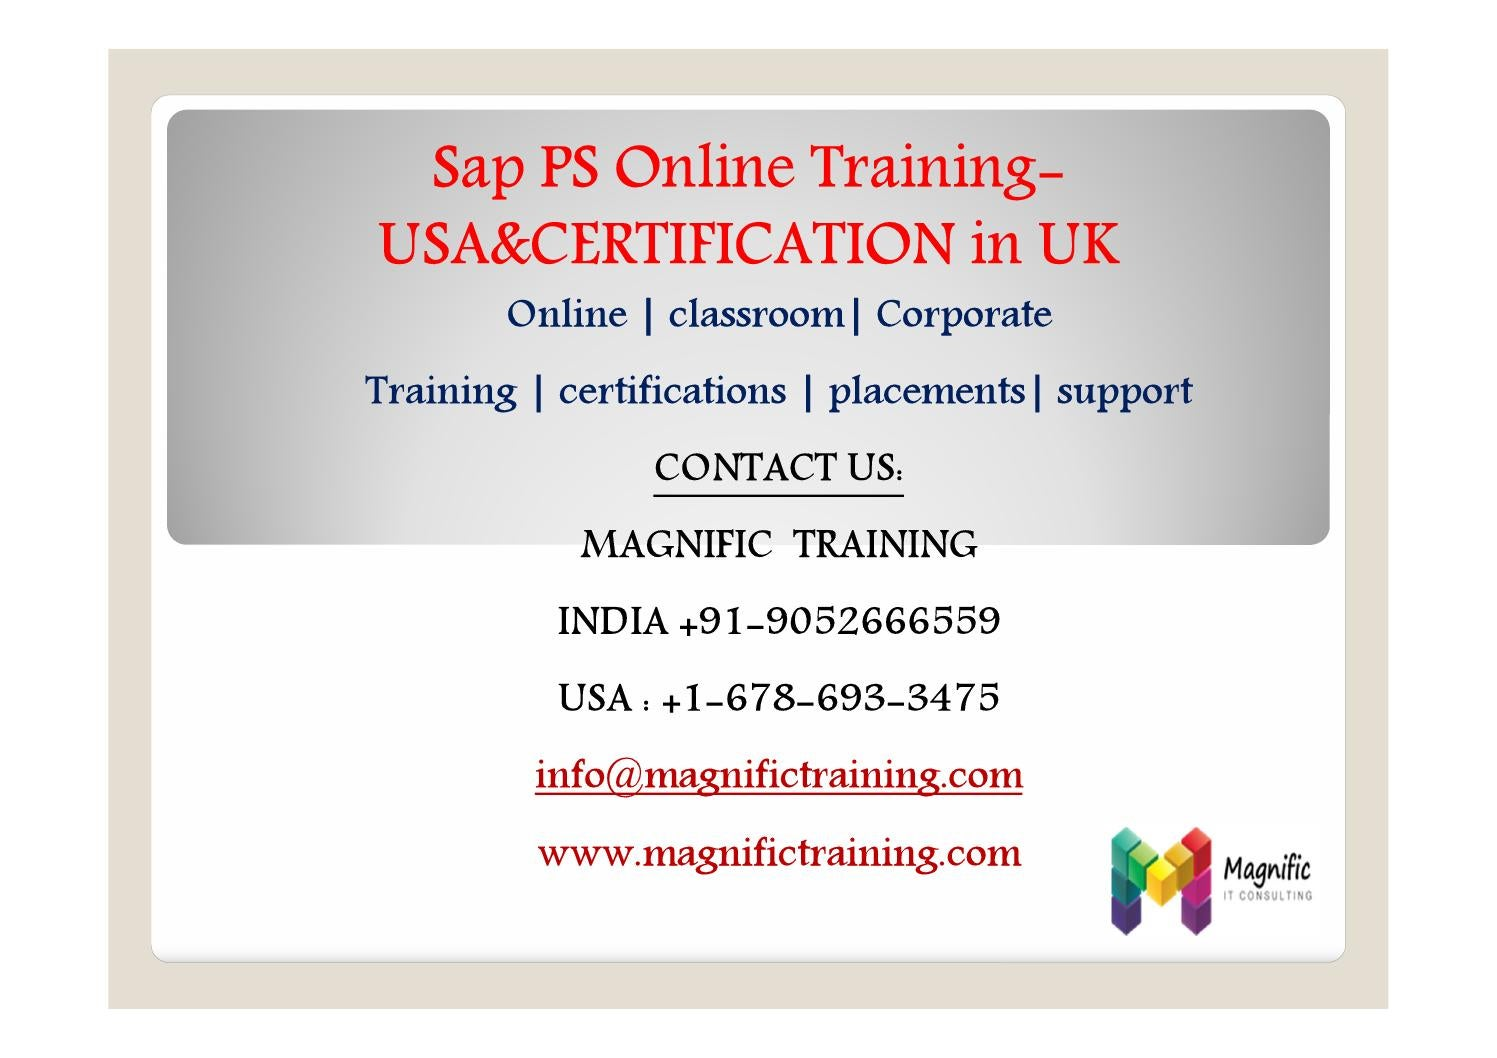 Sap Ps Online Training And Corporate Training By Magnificvs Issuu